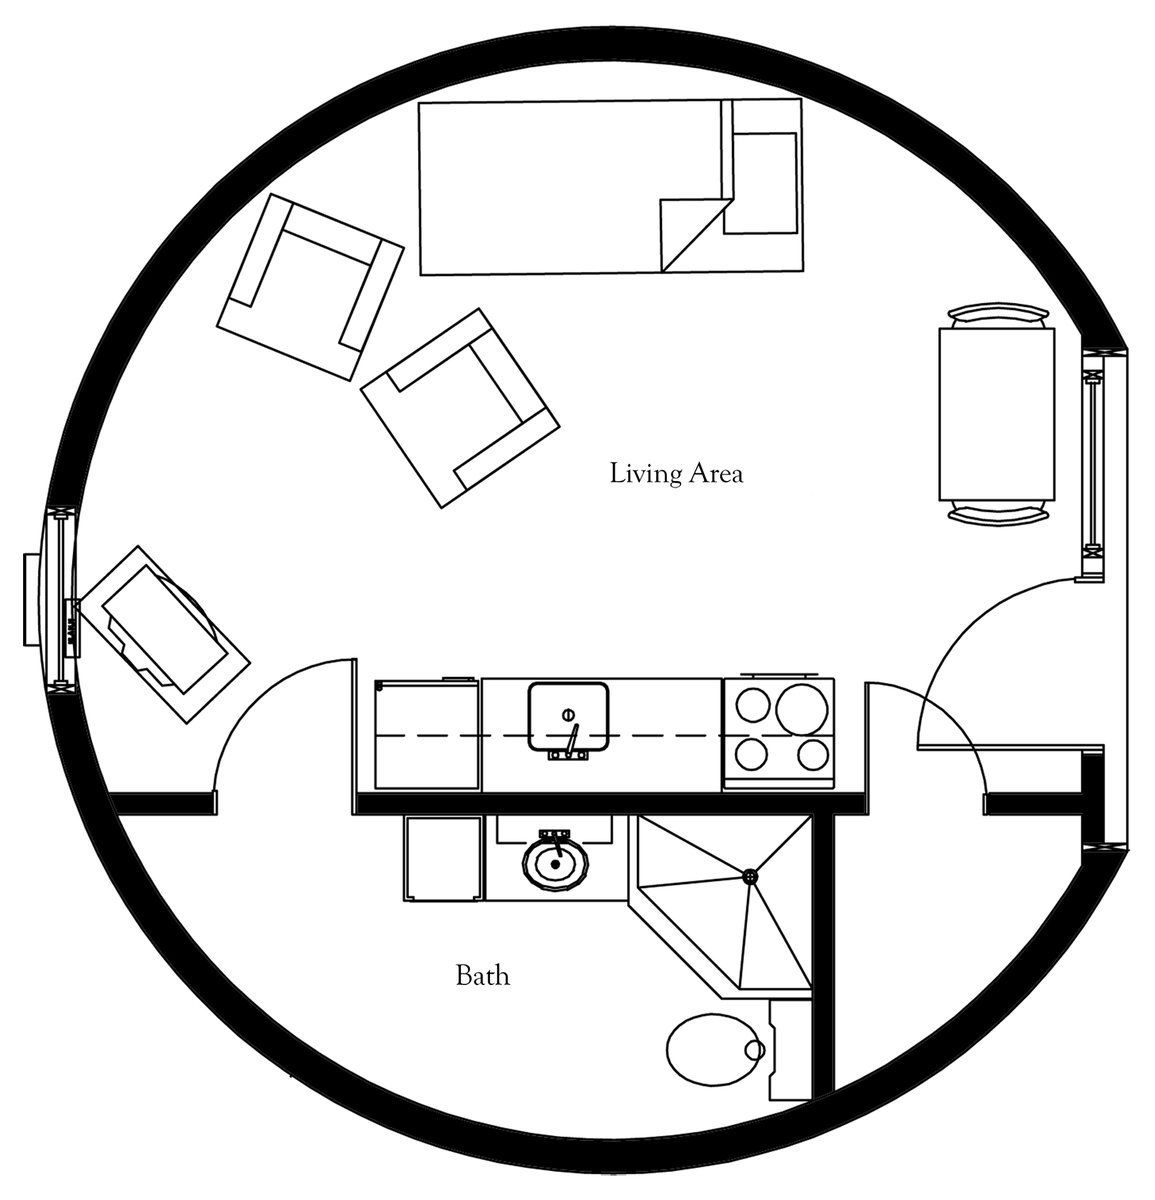 Plan Number: DL2001 Floor Area: 314 Square Feet Diameter